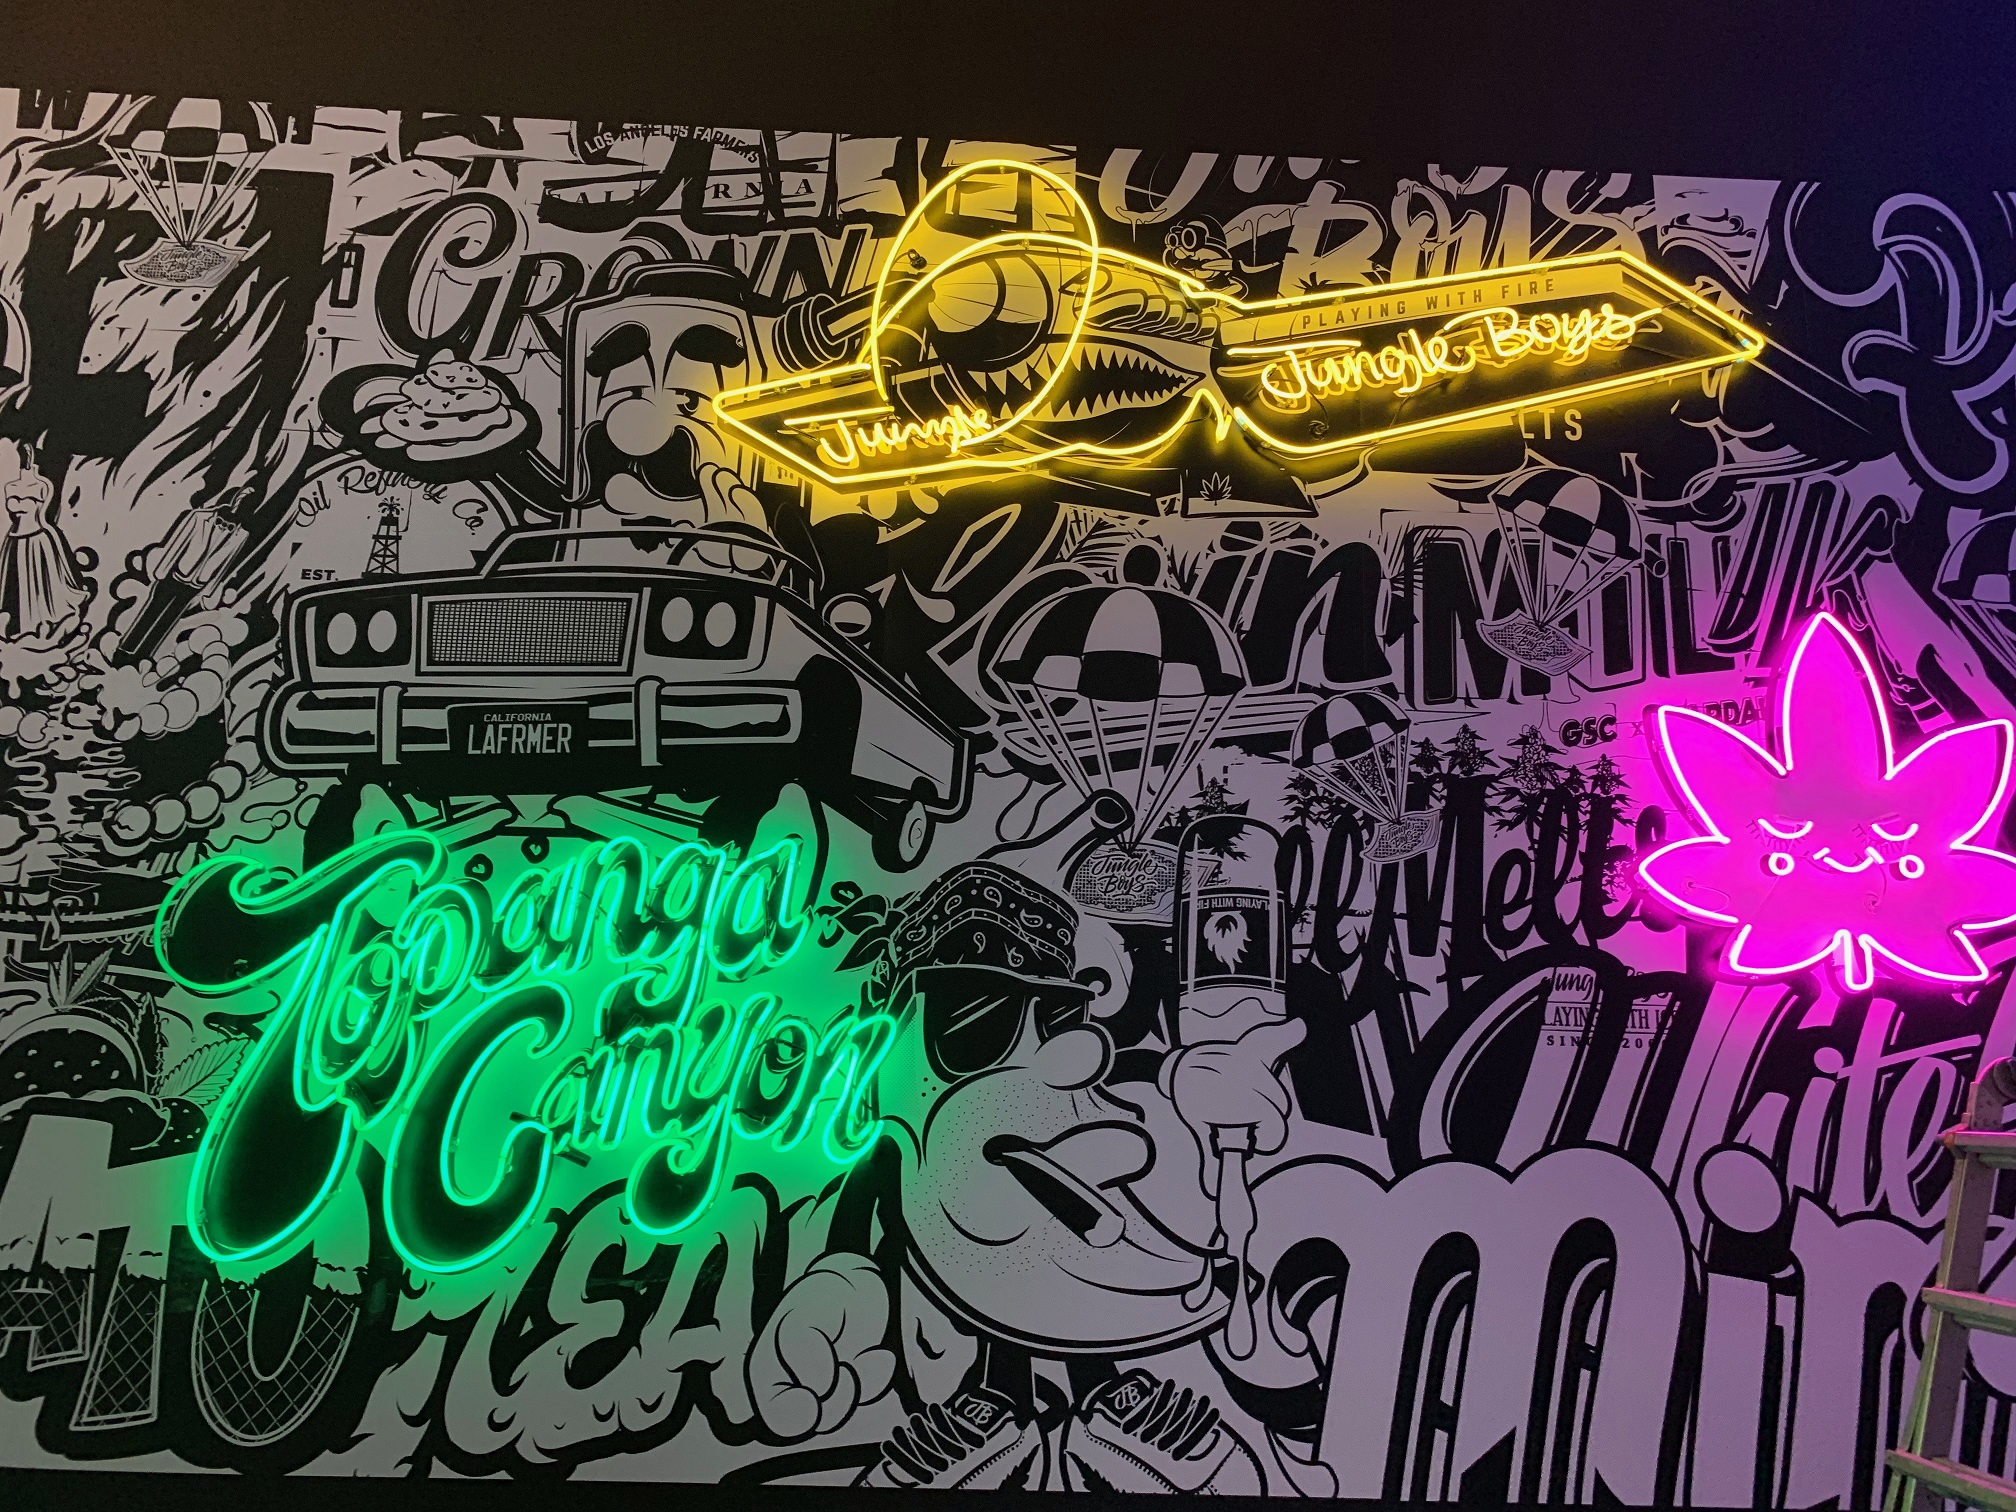 Neon signs, wall signs, wall art, CANNABIS SIGN, CANNABIS STORE, CLASSIC SIGNS, CUSTOM NEON SIGNAGE, CUSTOM NEON SIGNS, CUSTOM SIGN, CUSTOM SIGNS, LOS ANGELES NEON SIGN SHOP, MARIJUANA SIGN, MARIJUANA STORE, NEON ART, NEON BUSINESS SIGN, NEON SIGN, NEON SIGN DESIGNER, NEON SIGNAGE, NEON WALL SIGN, PREMIUM SIGN SOLUTIONS, SIGN AND BANNER COMPANY NEAR ME, SIGN COMPANIES, SIGN COMPANY NEAR ME, SIGN MAKING, SIGN RESOURCE AND LIKE COMPANIES, SIGNS FOR SALE FOR BUSINESS, STORE SIGN, VINTAGE WALL ART, WALL ART, WALL SIGN